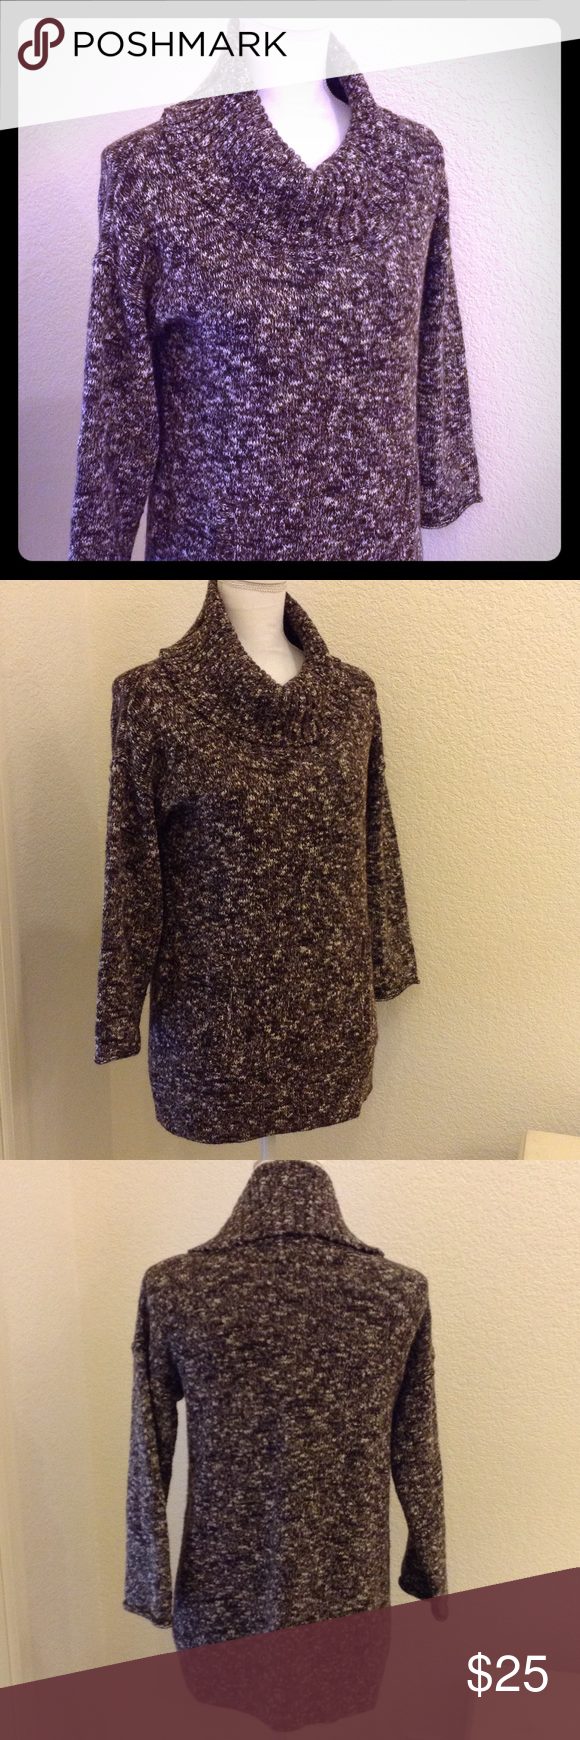 """J. Crew Turtleneck Sweater Tunic Excellent condition, wool blend, turtleneck, 3/4 sleeves with flared ends, tummy pocket/pouch,  about 25"""" long. J. Crew Sweaters Cowl & Turtlenecks"""